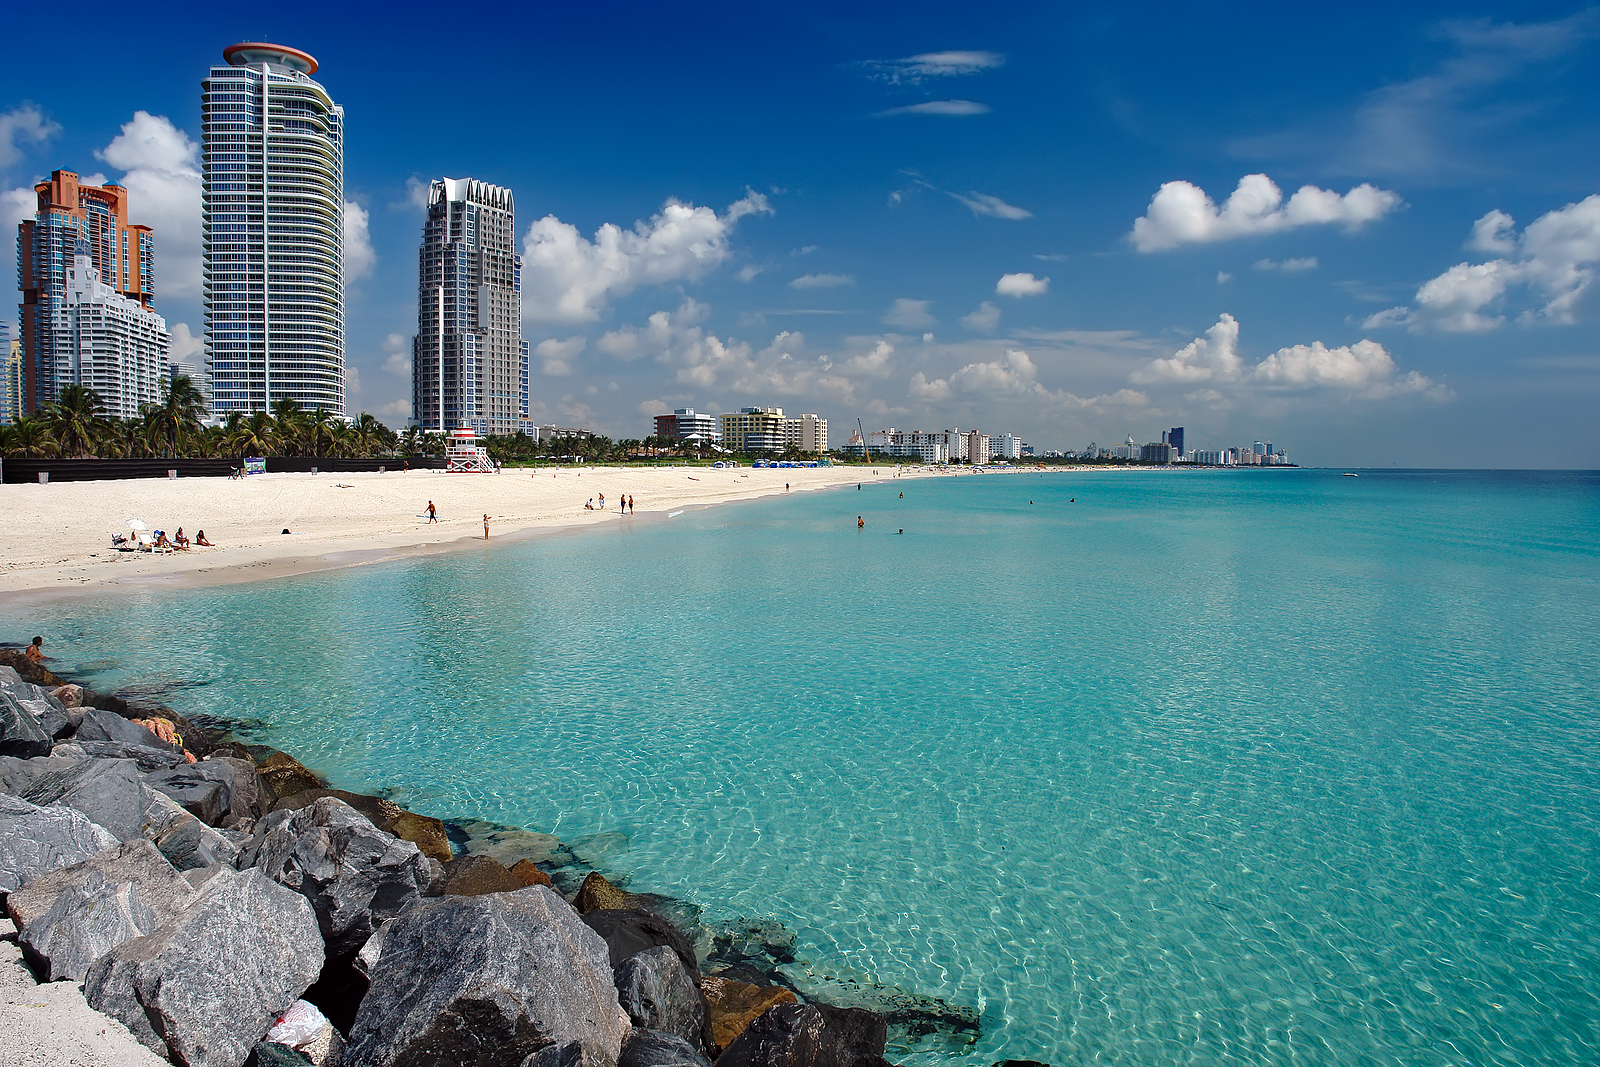 miami beach hd wallpaper miami beach hd wallpaper gallery